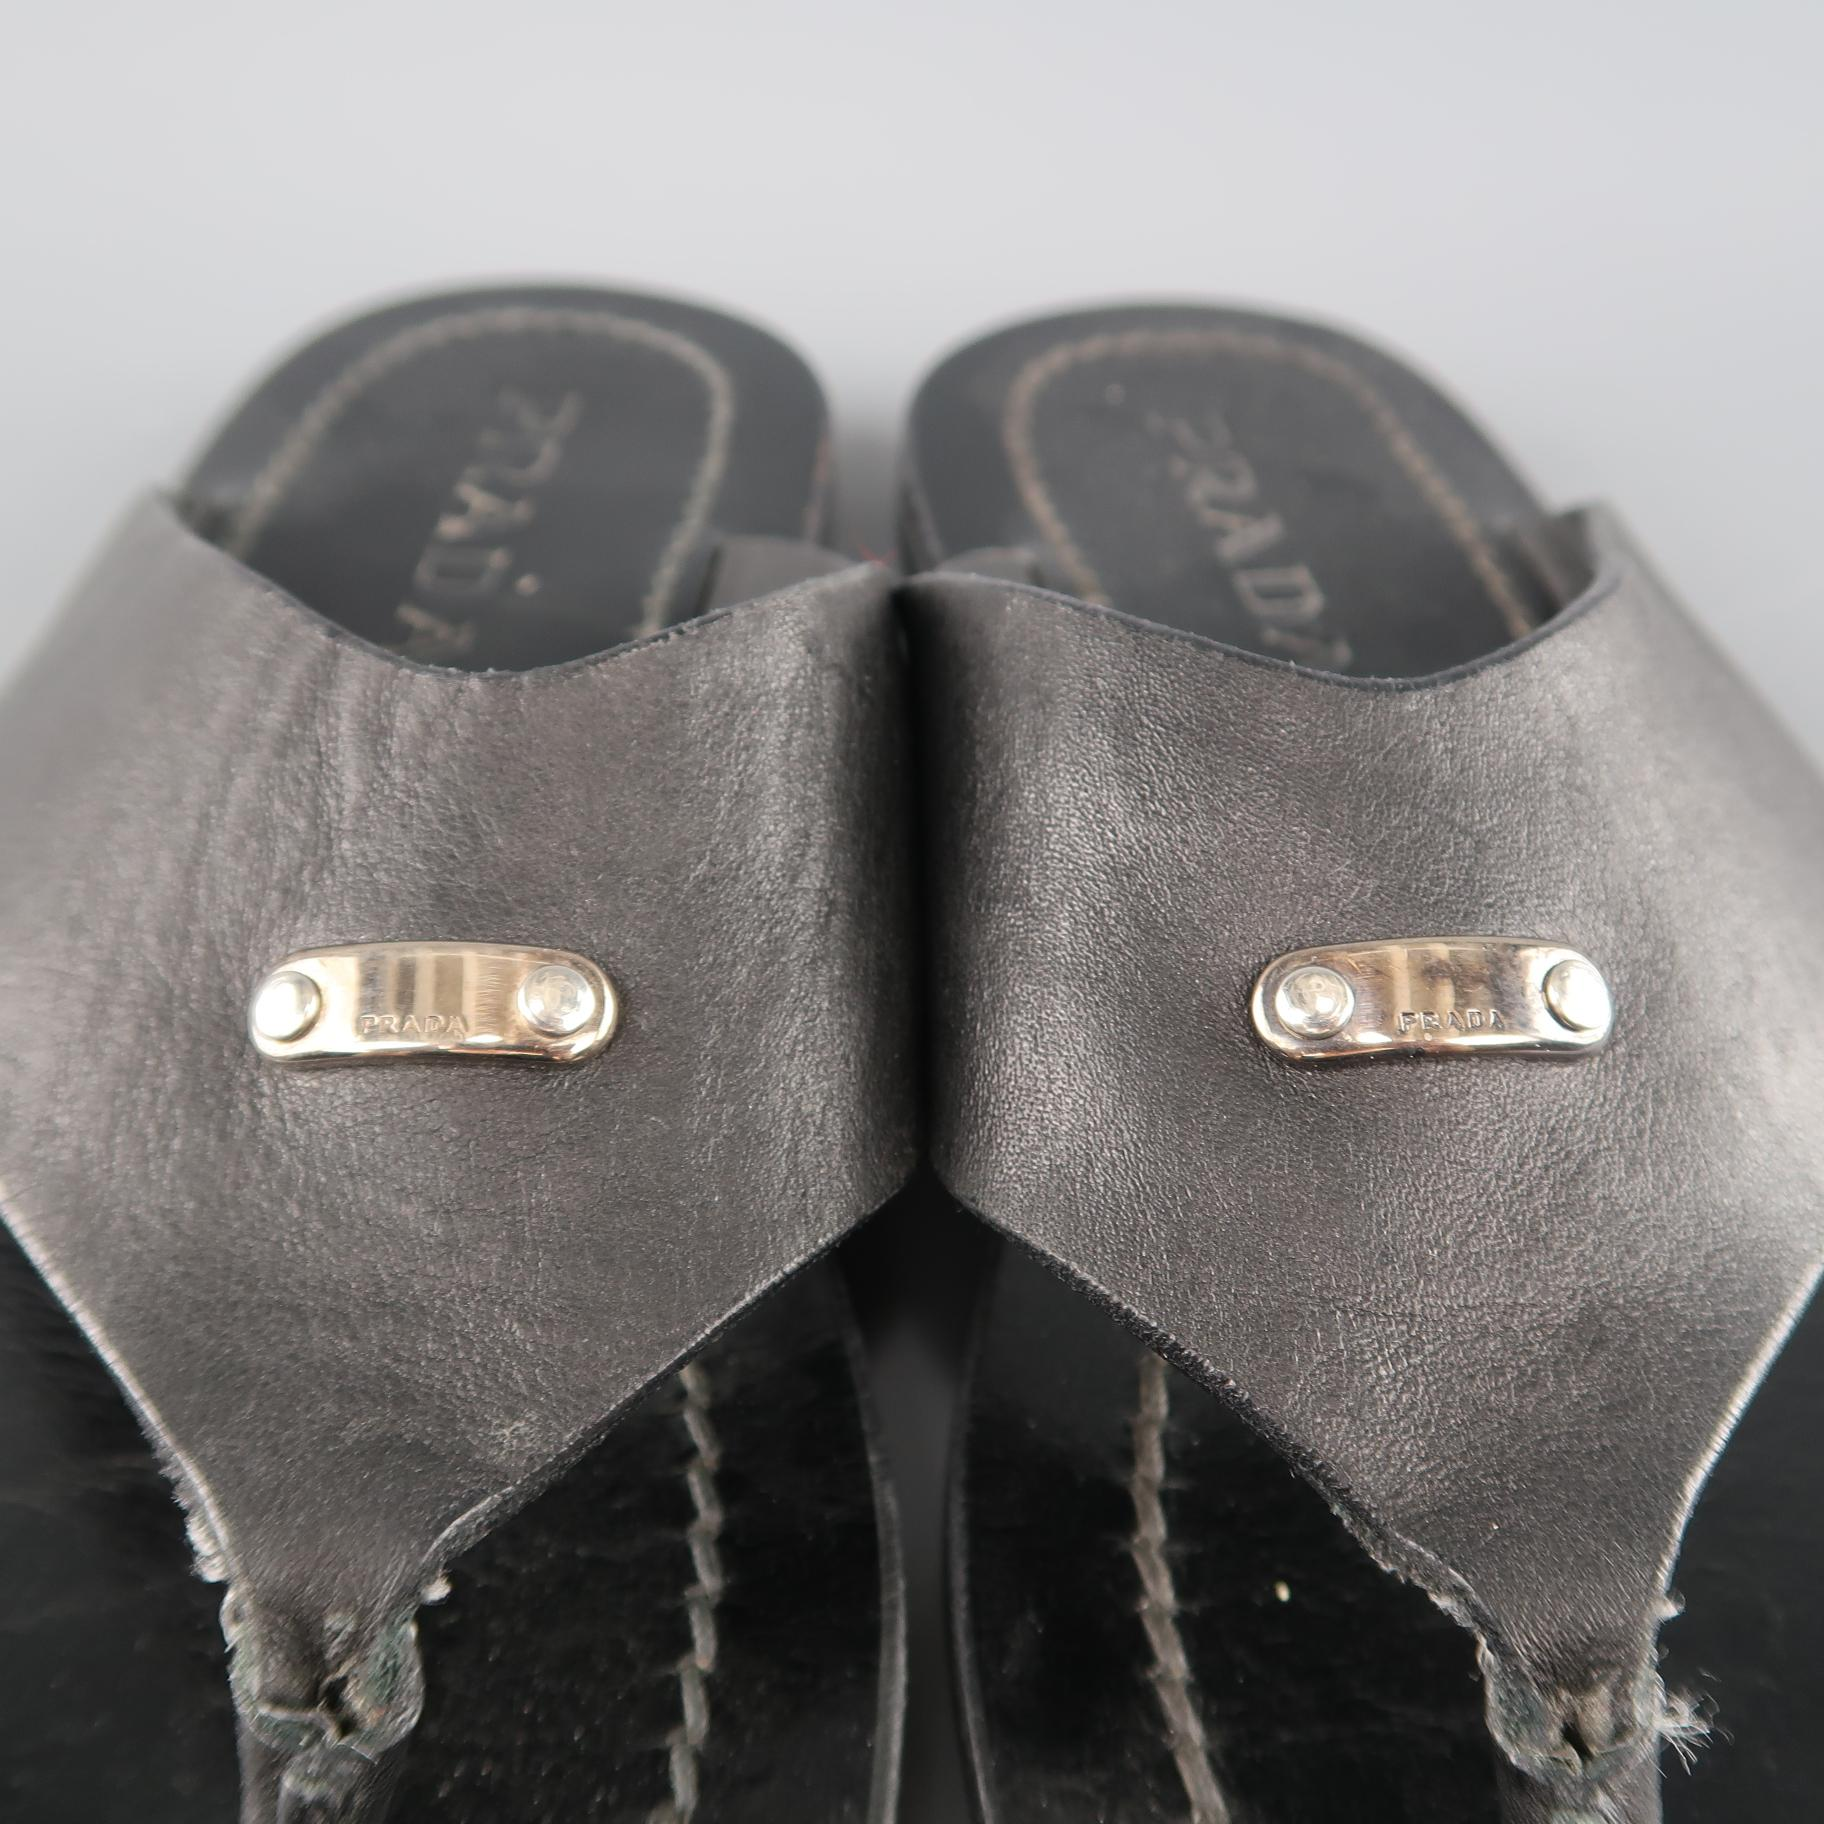 b4a1dab168d PRADA Size 8 Black Leather Silver Logo Thong Sandals For Sale at 1stdibs